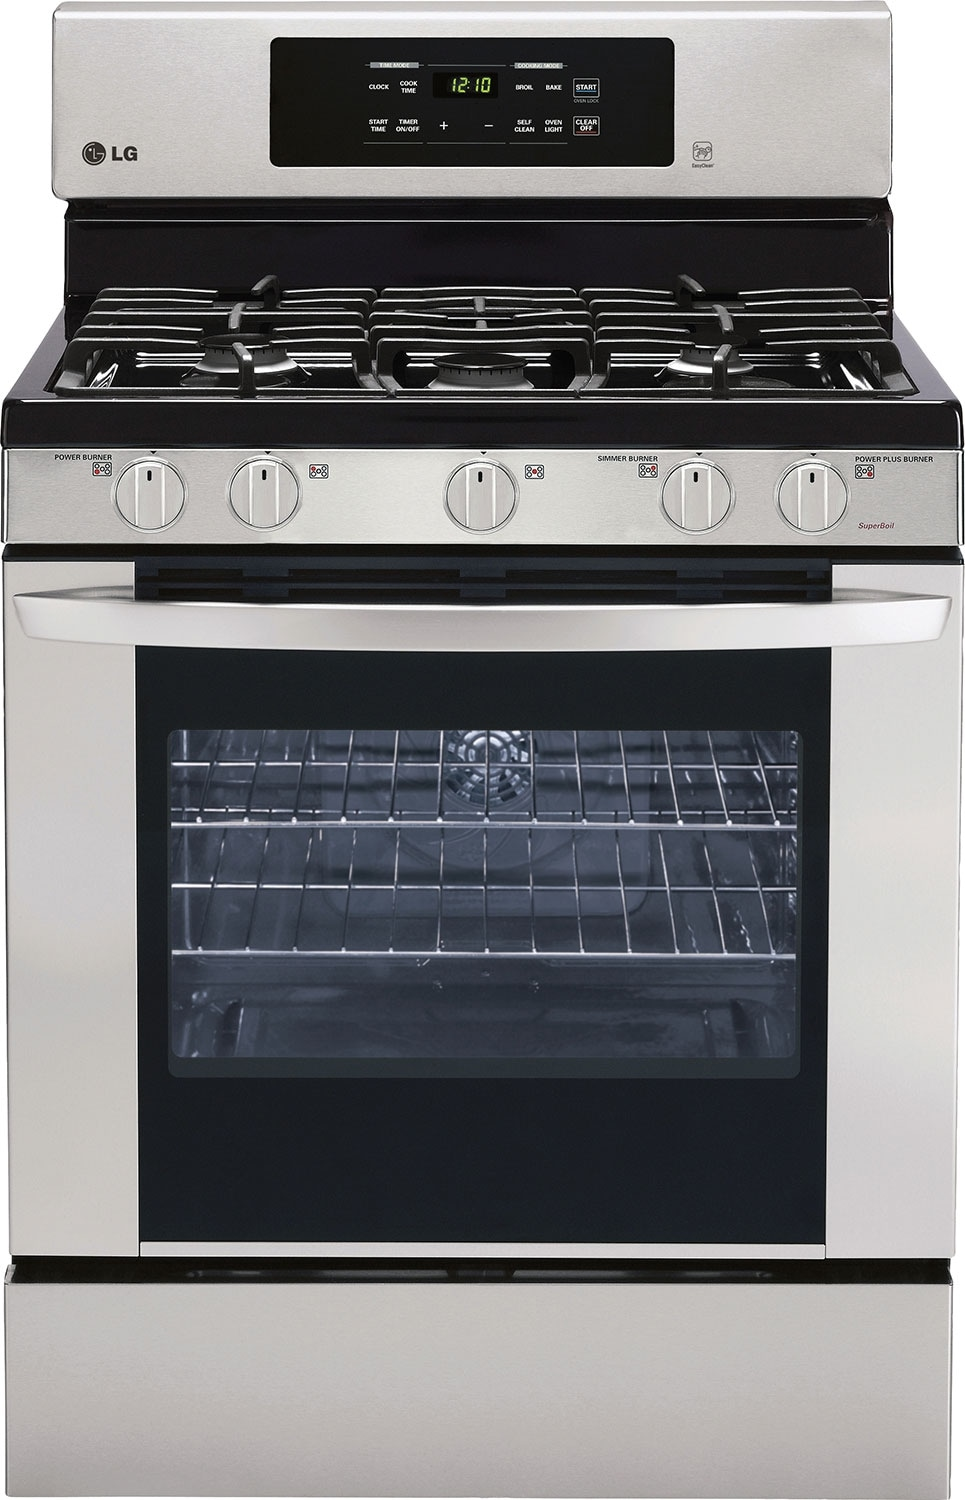 Cooking Products - LG 5.4 Cu. Ft. Freestanding Gas Range – Stainless Steel